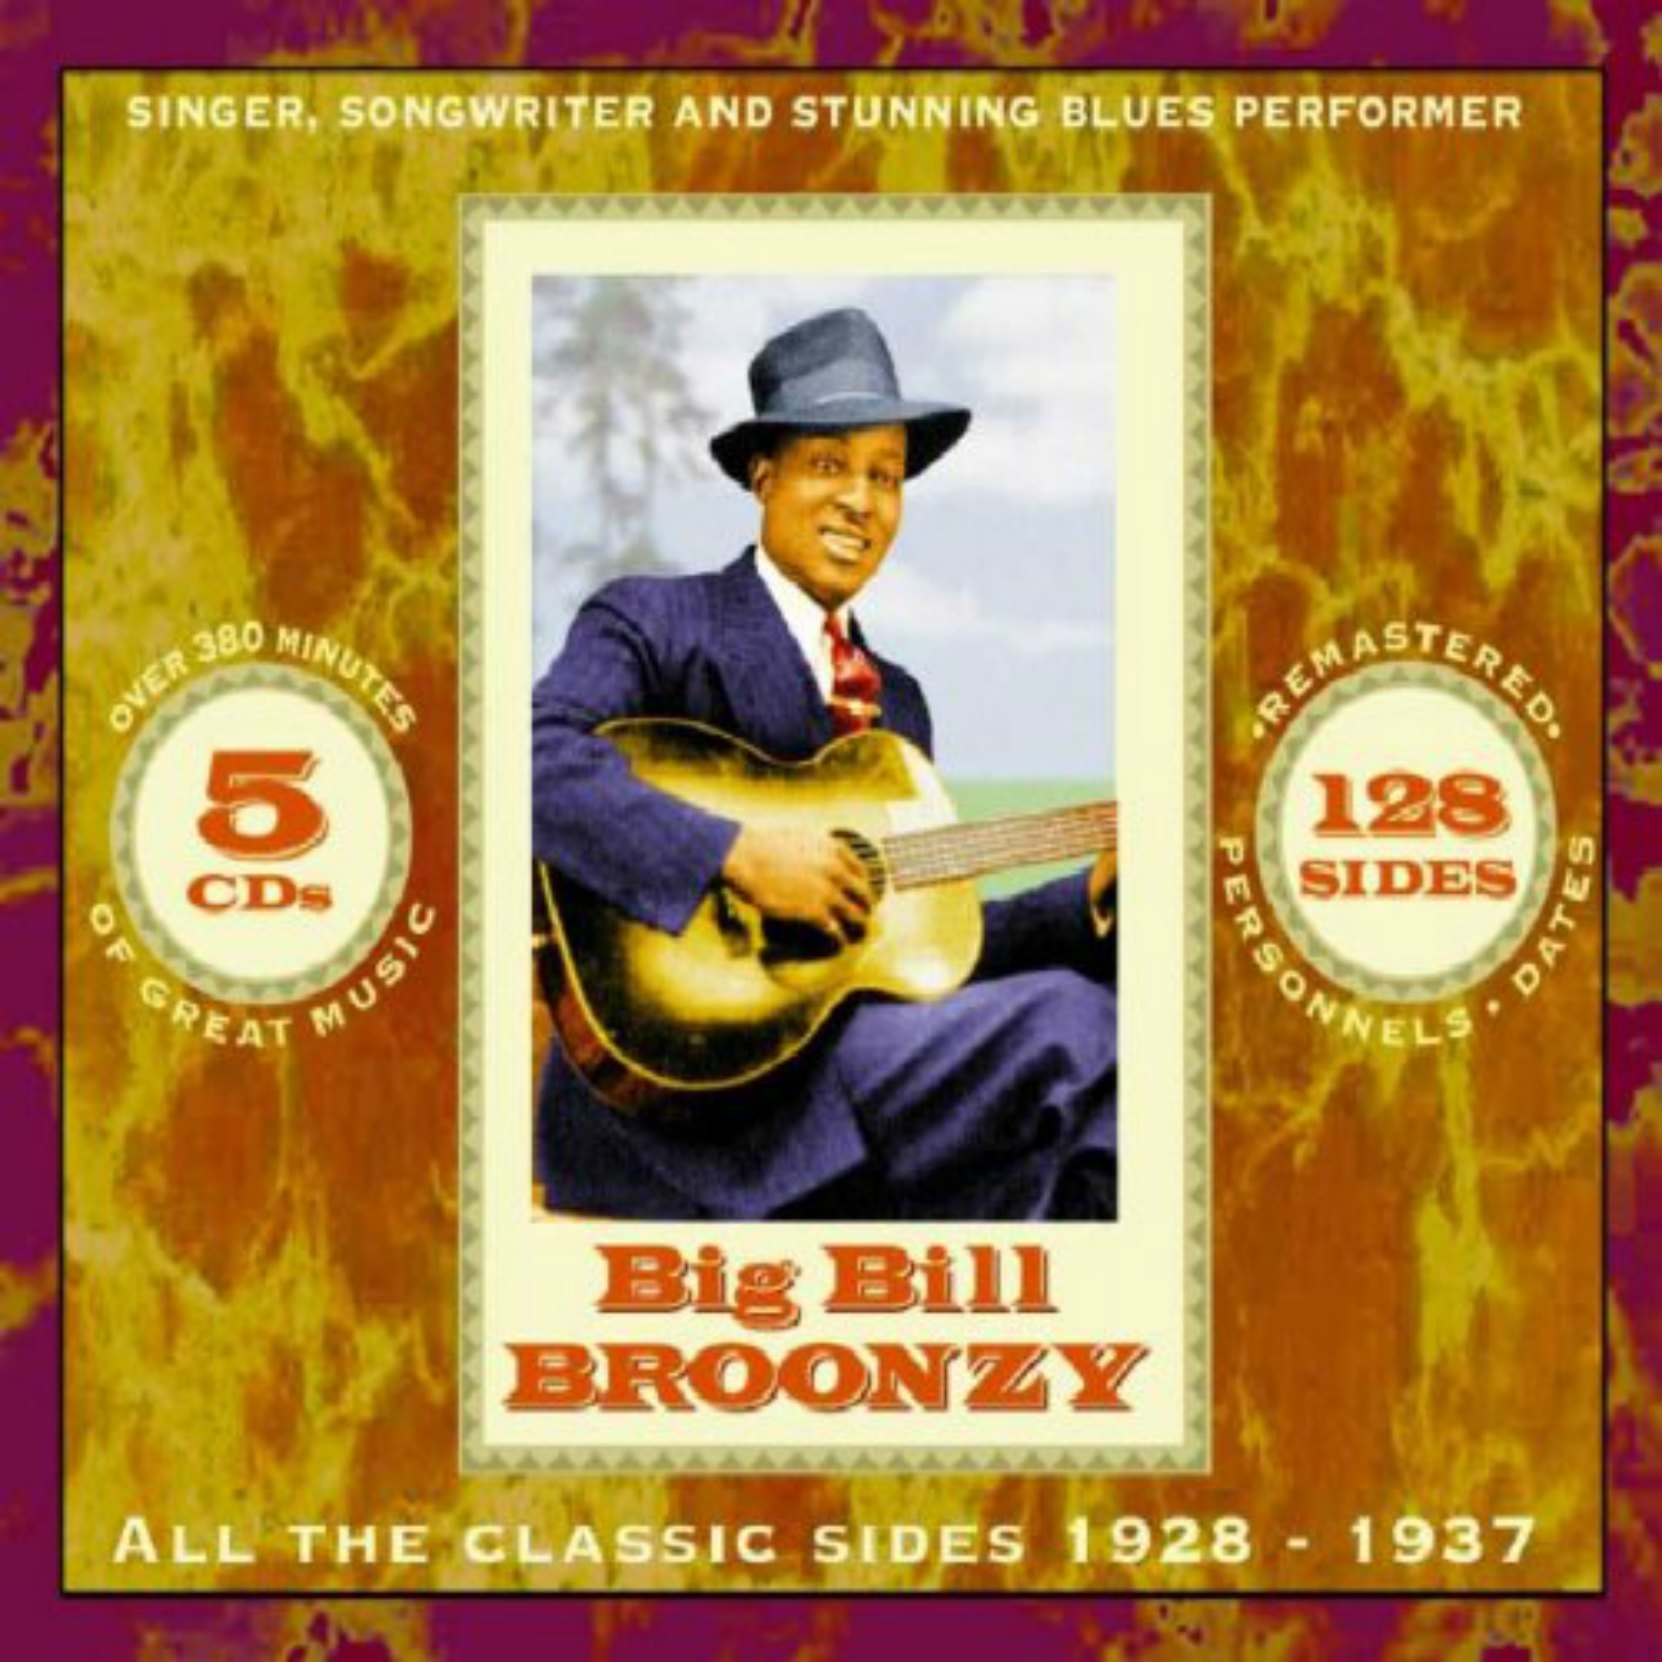 CD cover. Big Bill Broonzy, All The Classic Sides 1928-37, on JSP Records